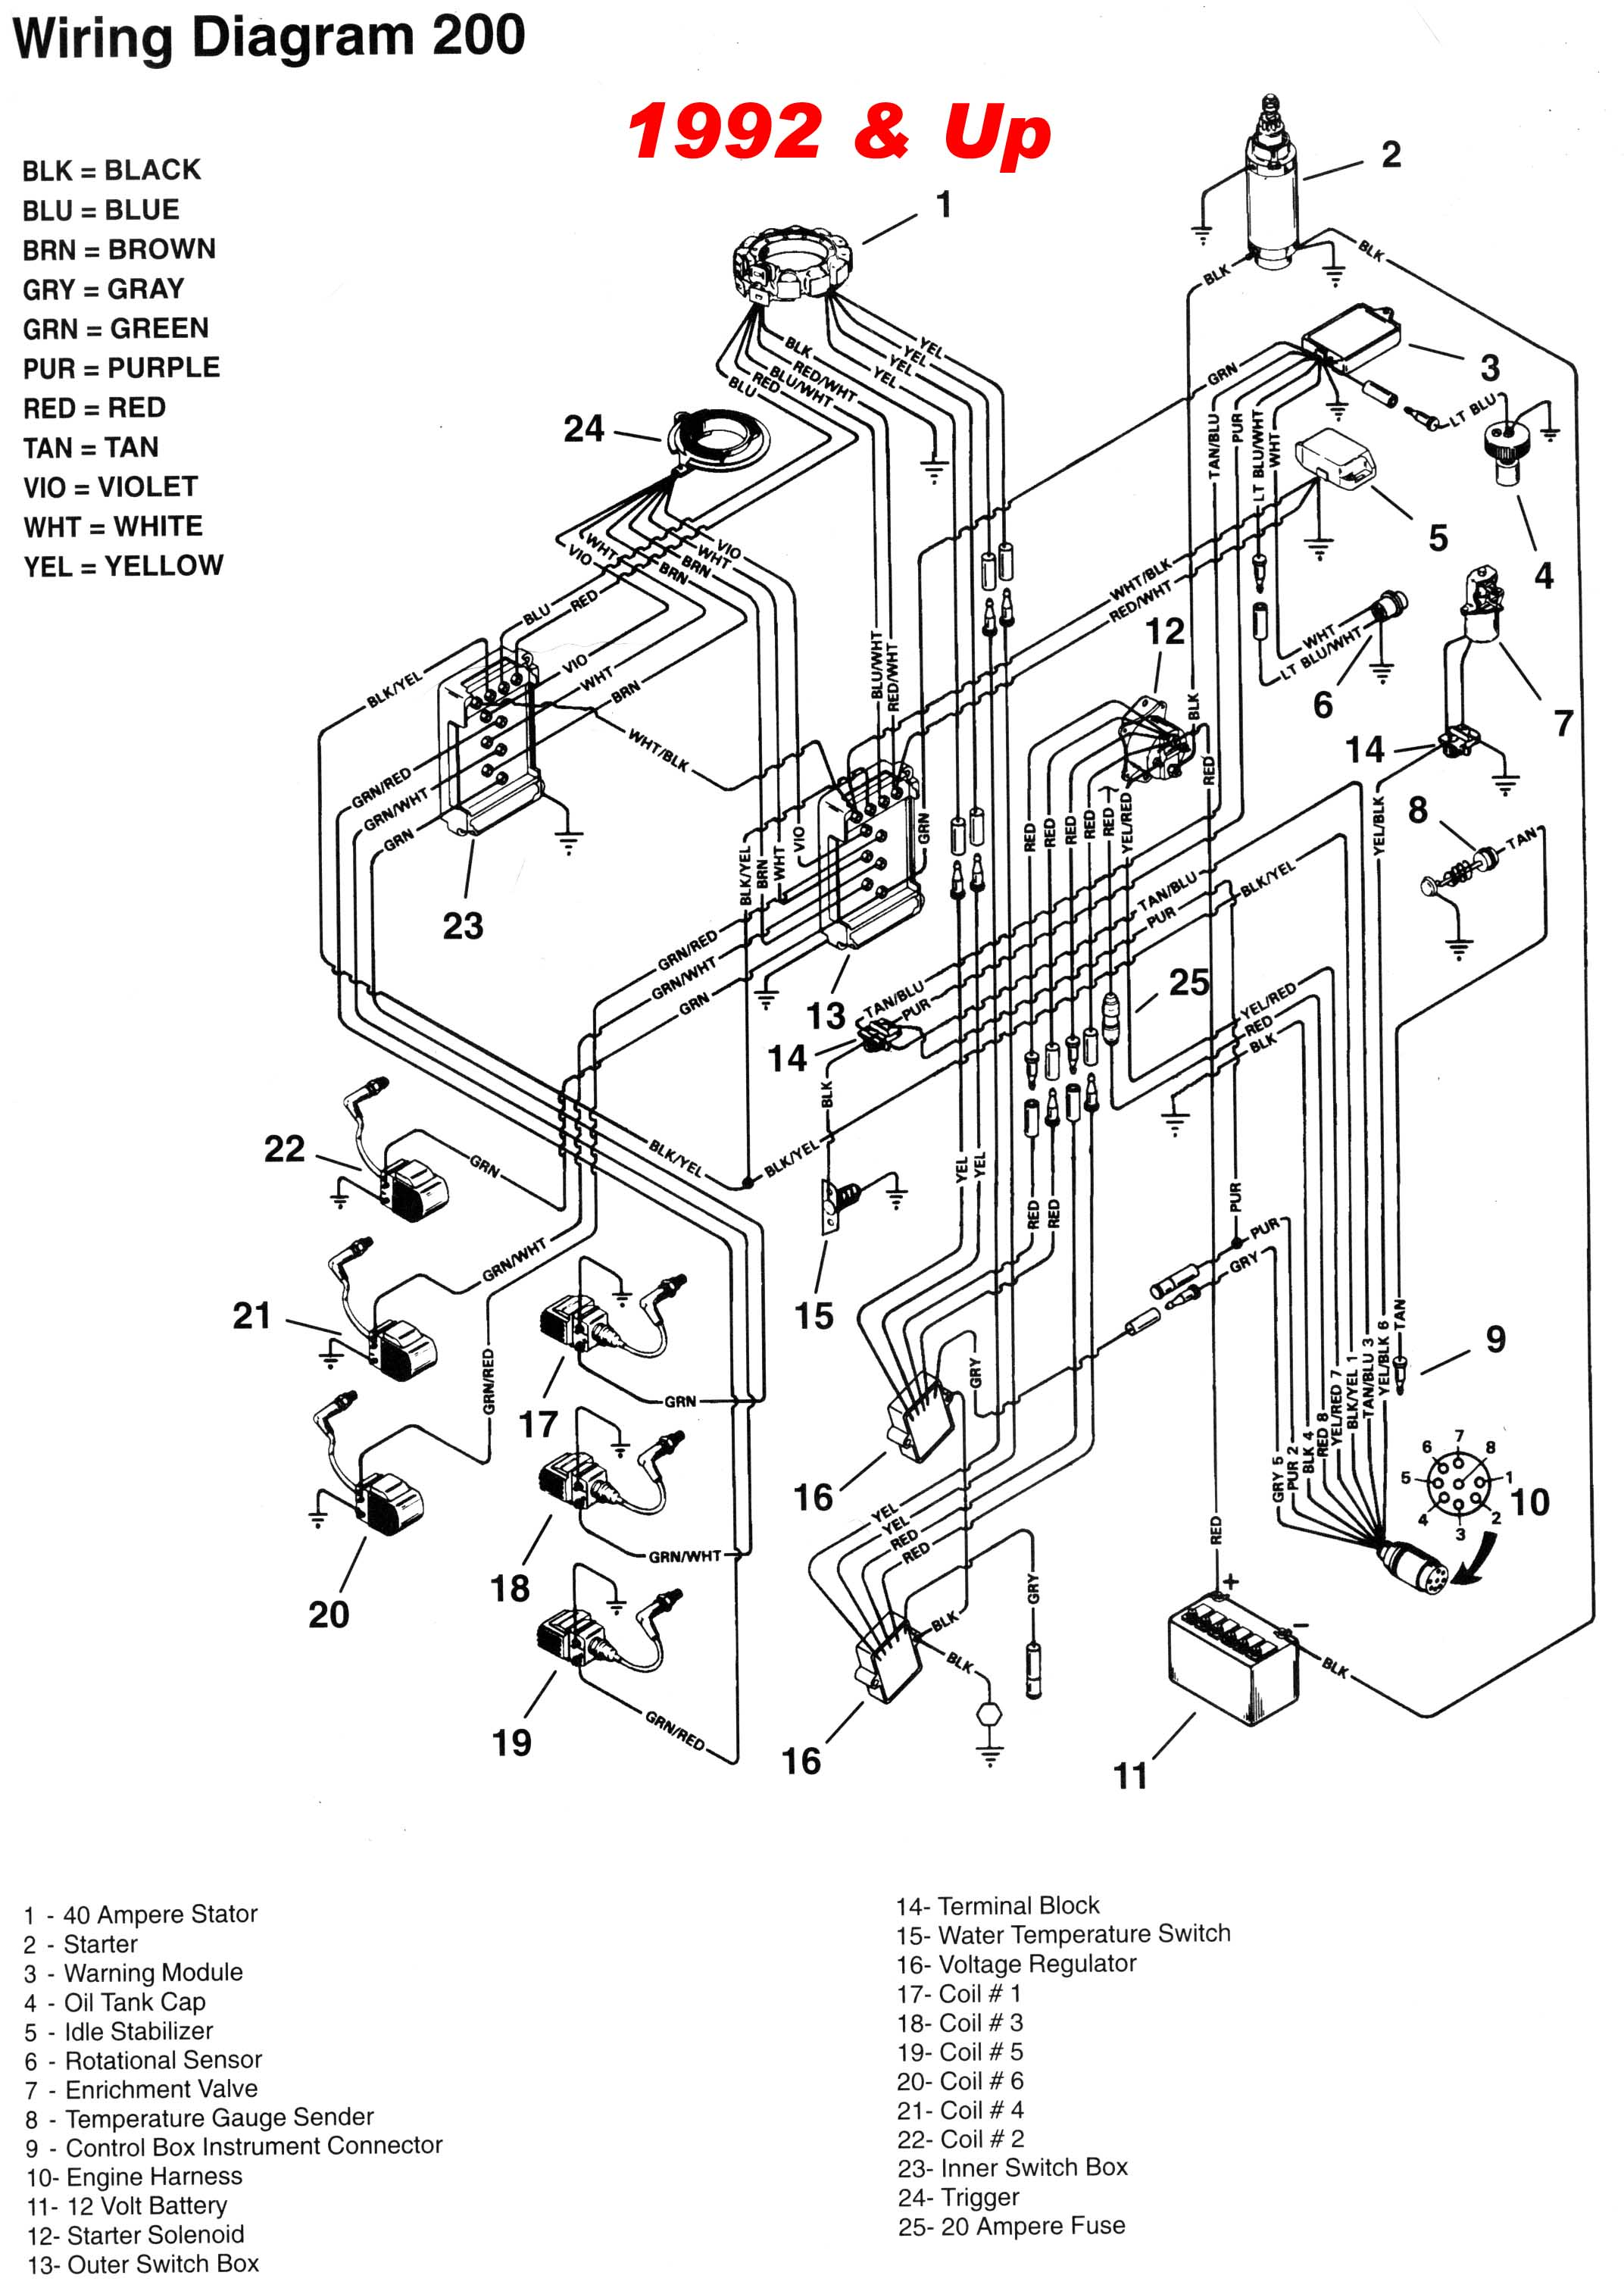 mercury_92up_200_wiring mercury optimax wiring diagram mercury verado wiring diagram mercury outboard external wiring harness at edmiracle.co